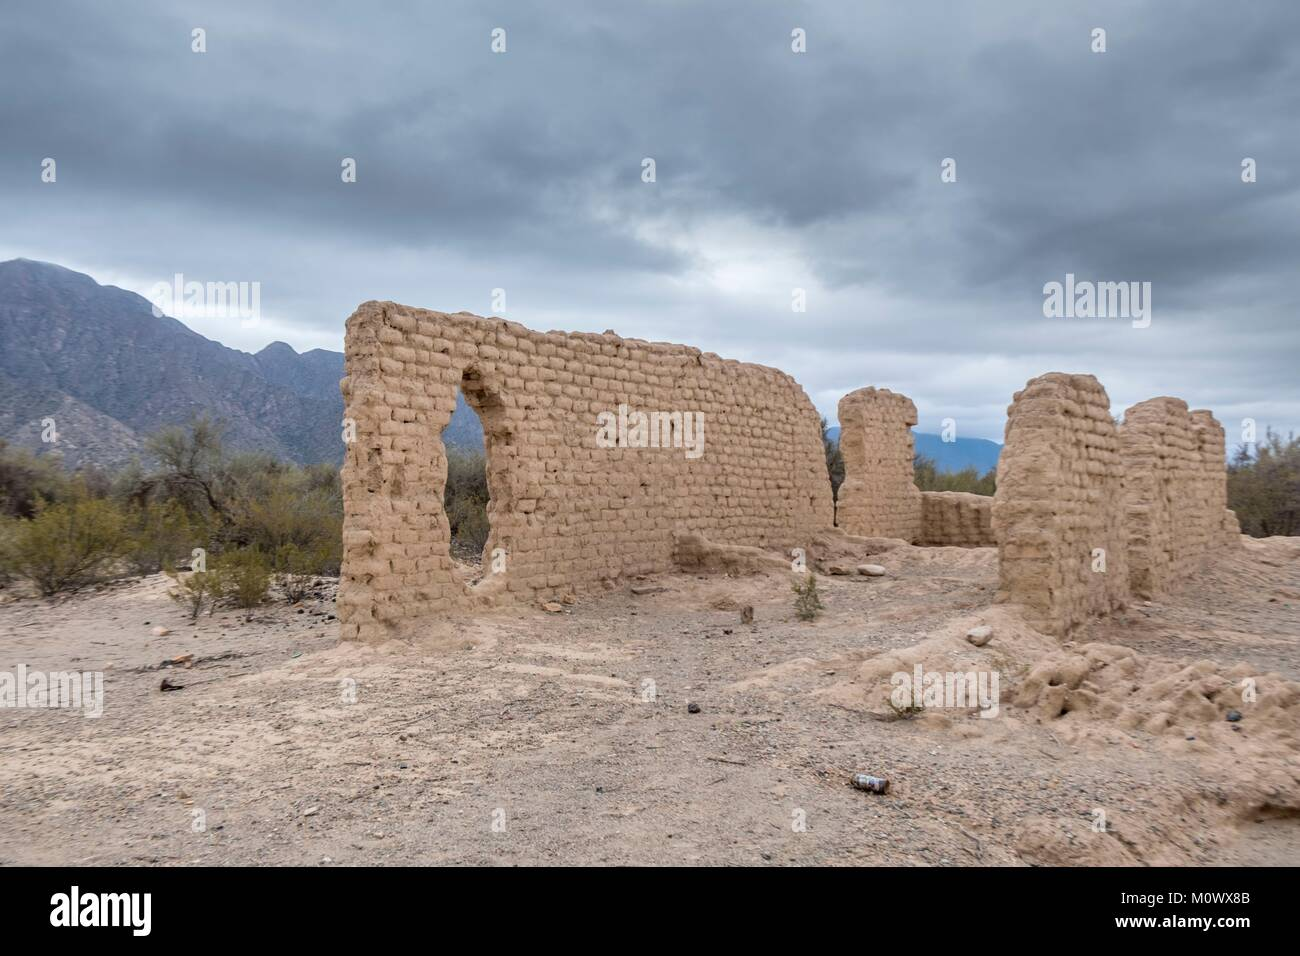 Argentine,Rioja Province,Famatina,Capayan ruins - Stock Image